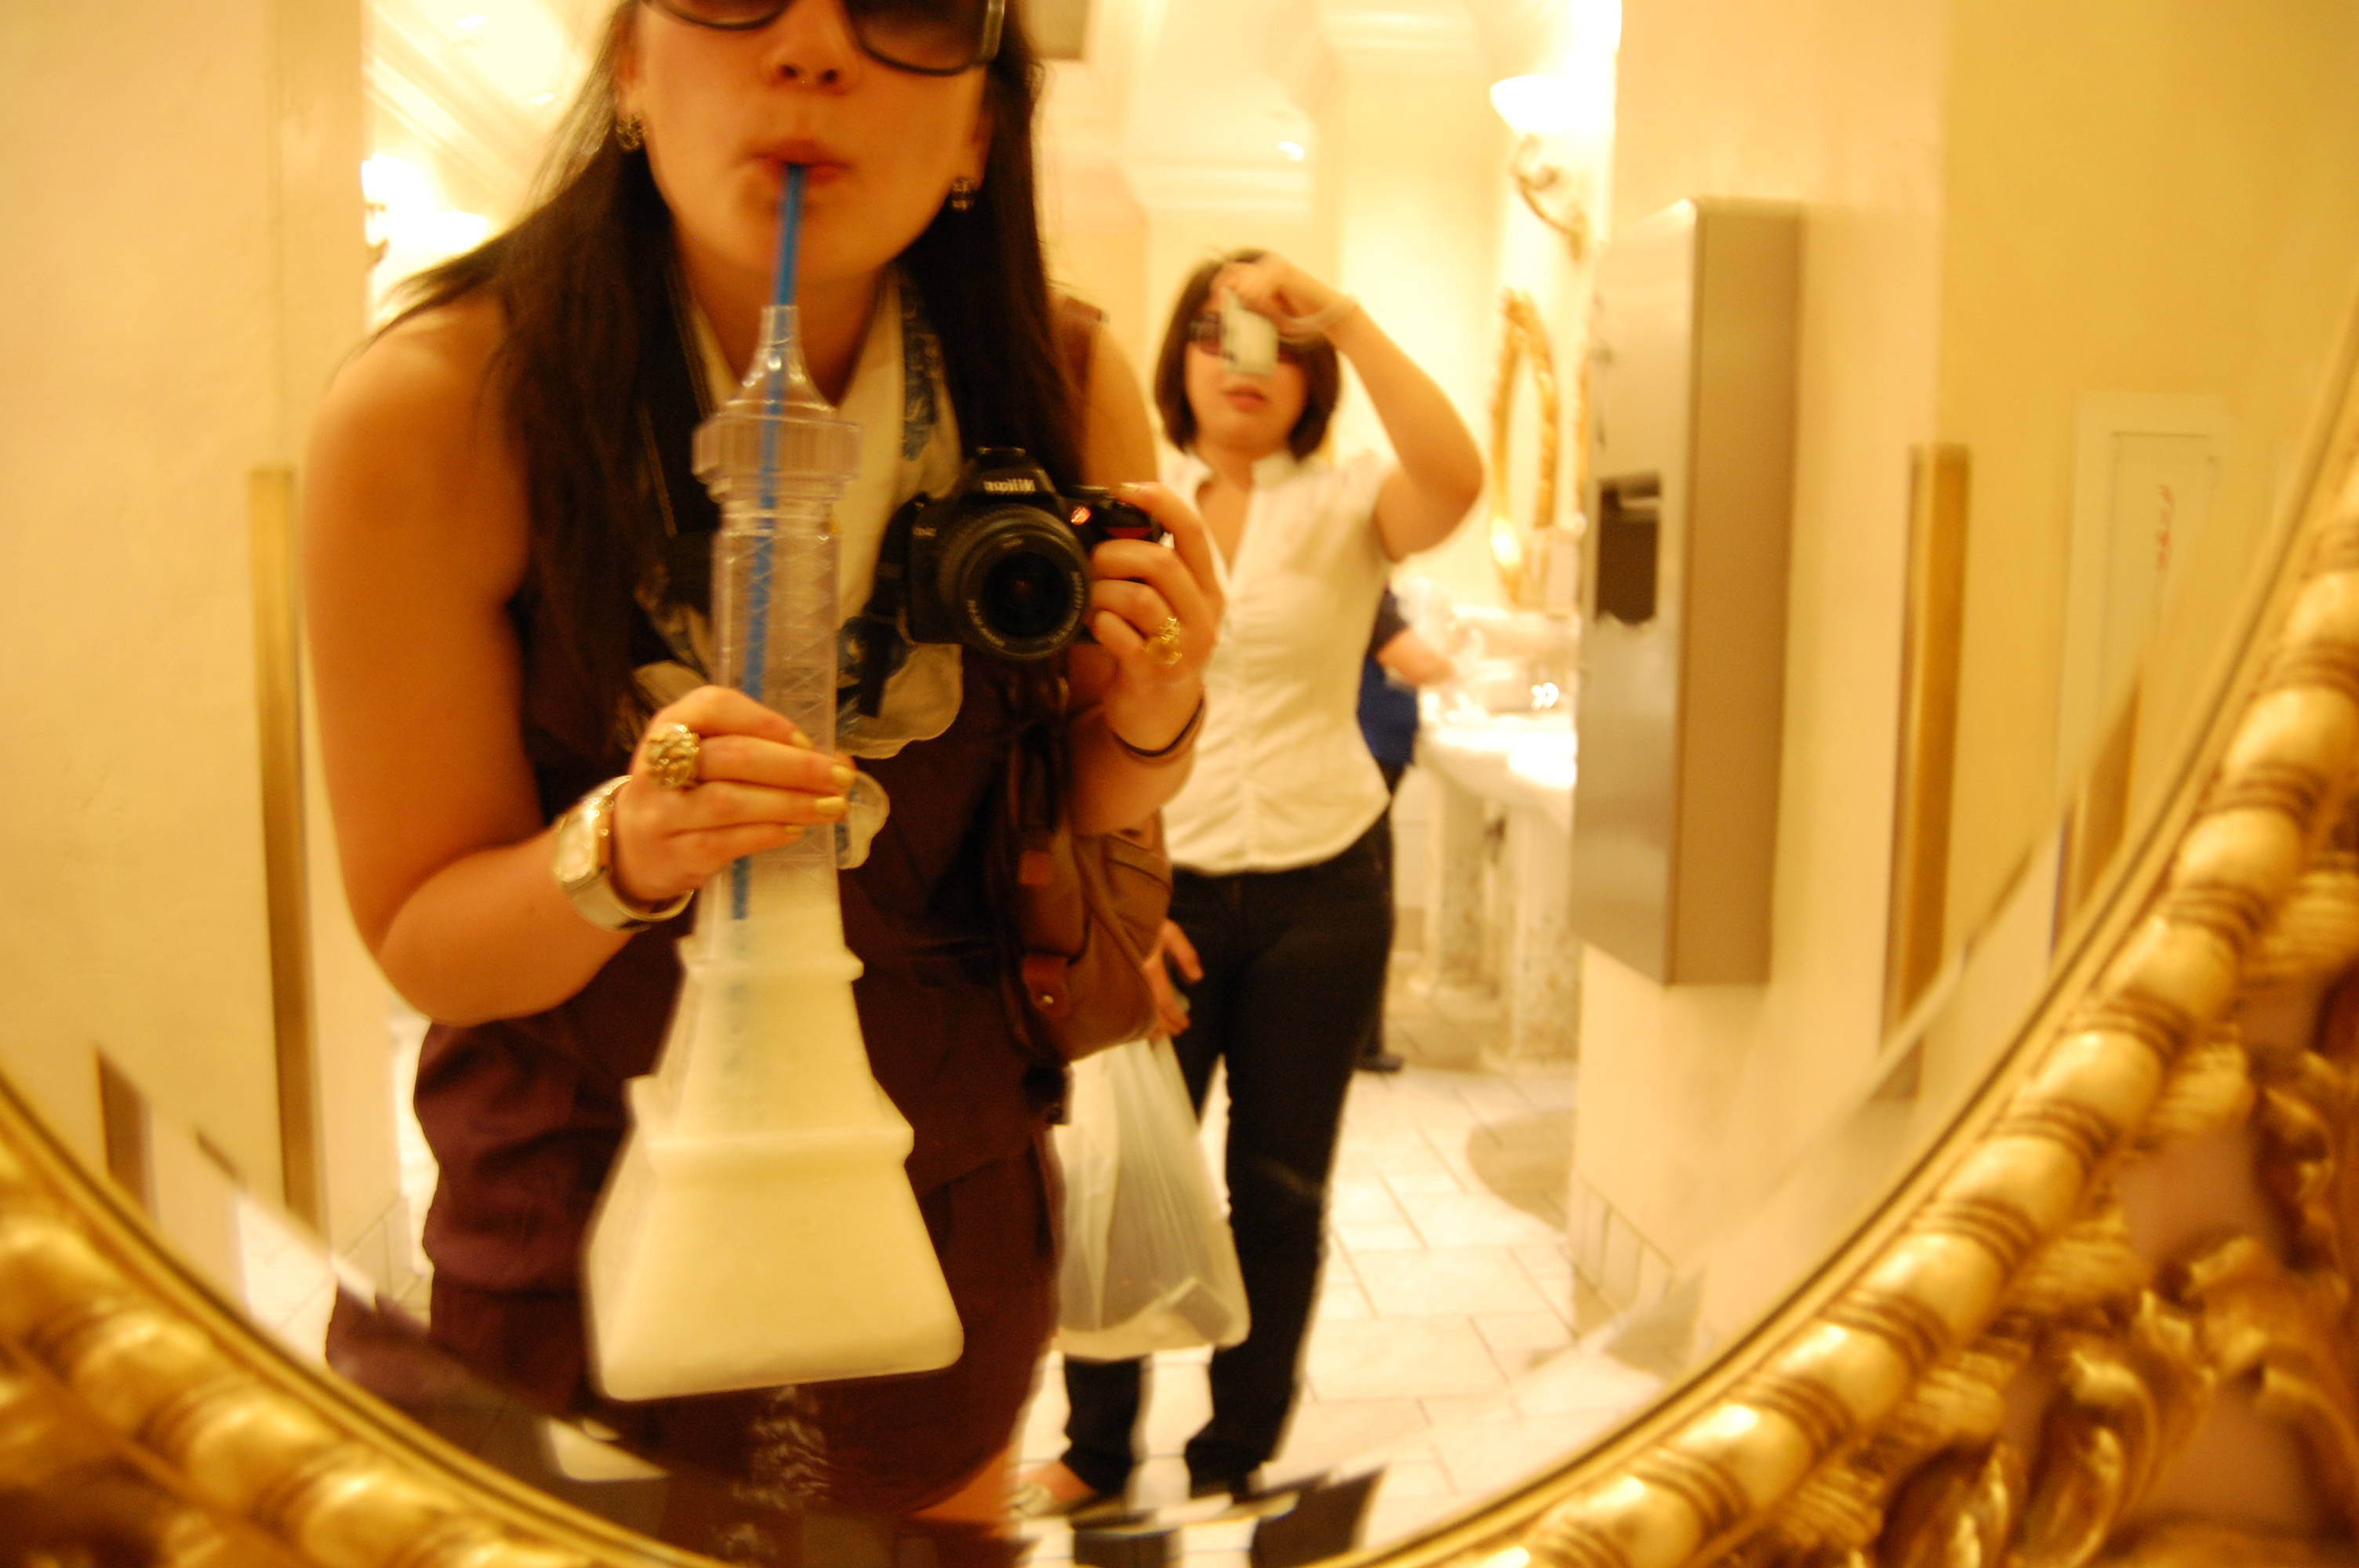 Las Vegas 2009, with friend. Sinking our teeth (and our livers) into the role of debauched day drinkers/Dionysian daredevils